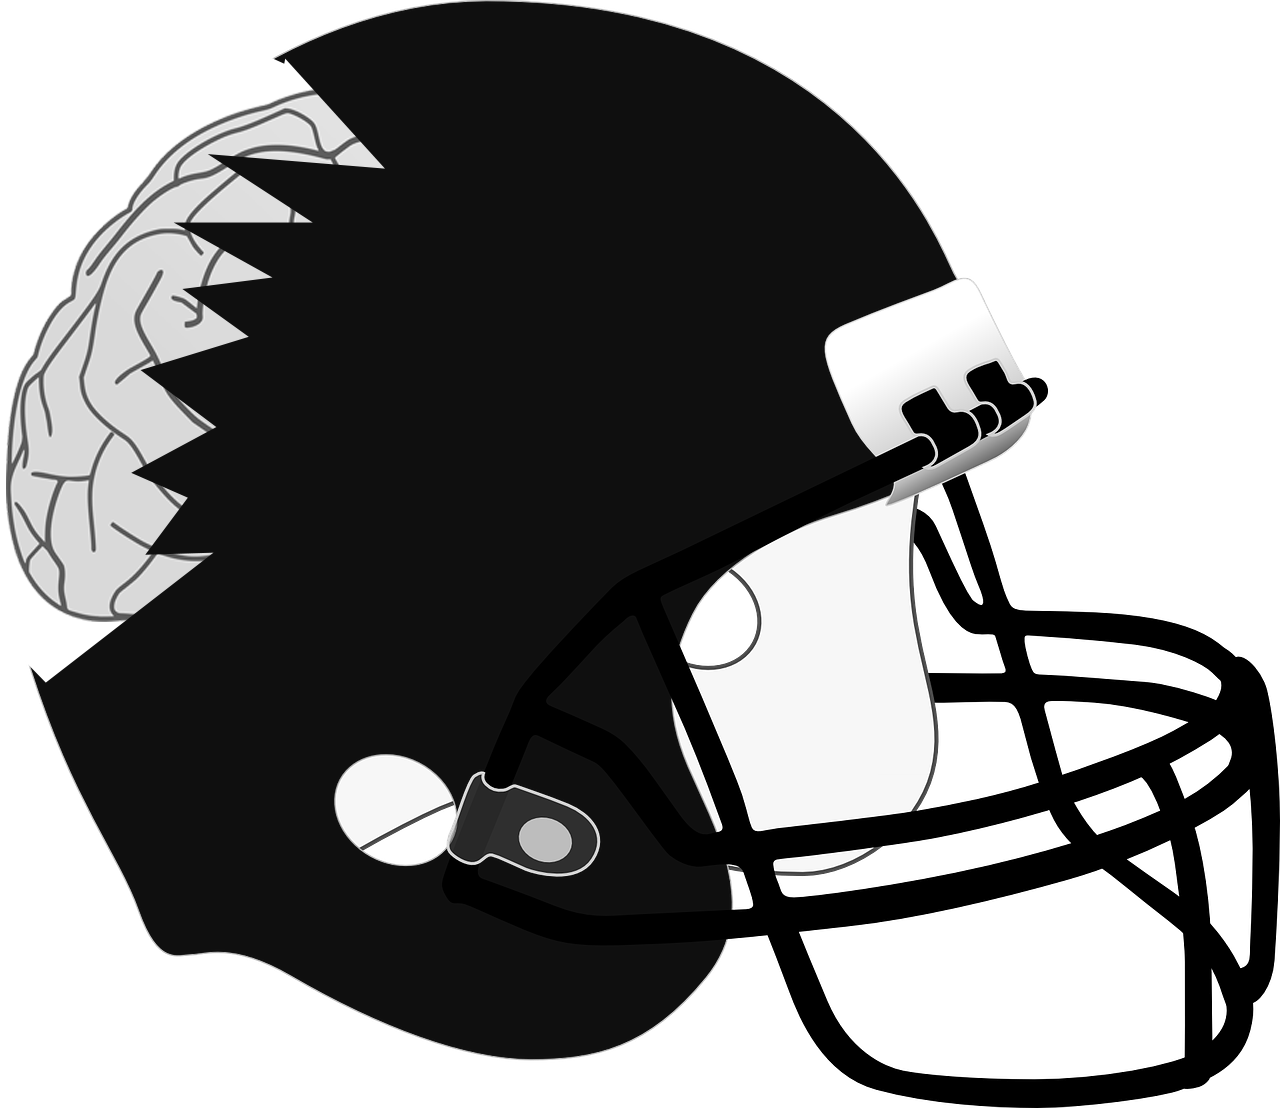 Football linebacker clipart jpg black and white library Even after crackdown, concussions still plague the NFL | The Paisano jpg black and white library